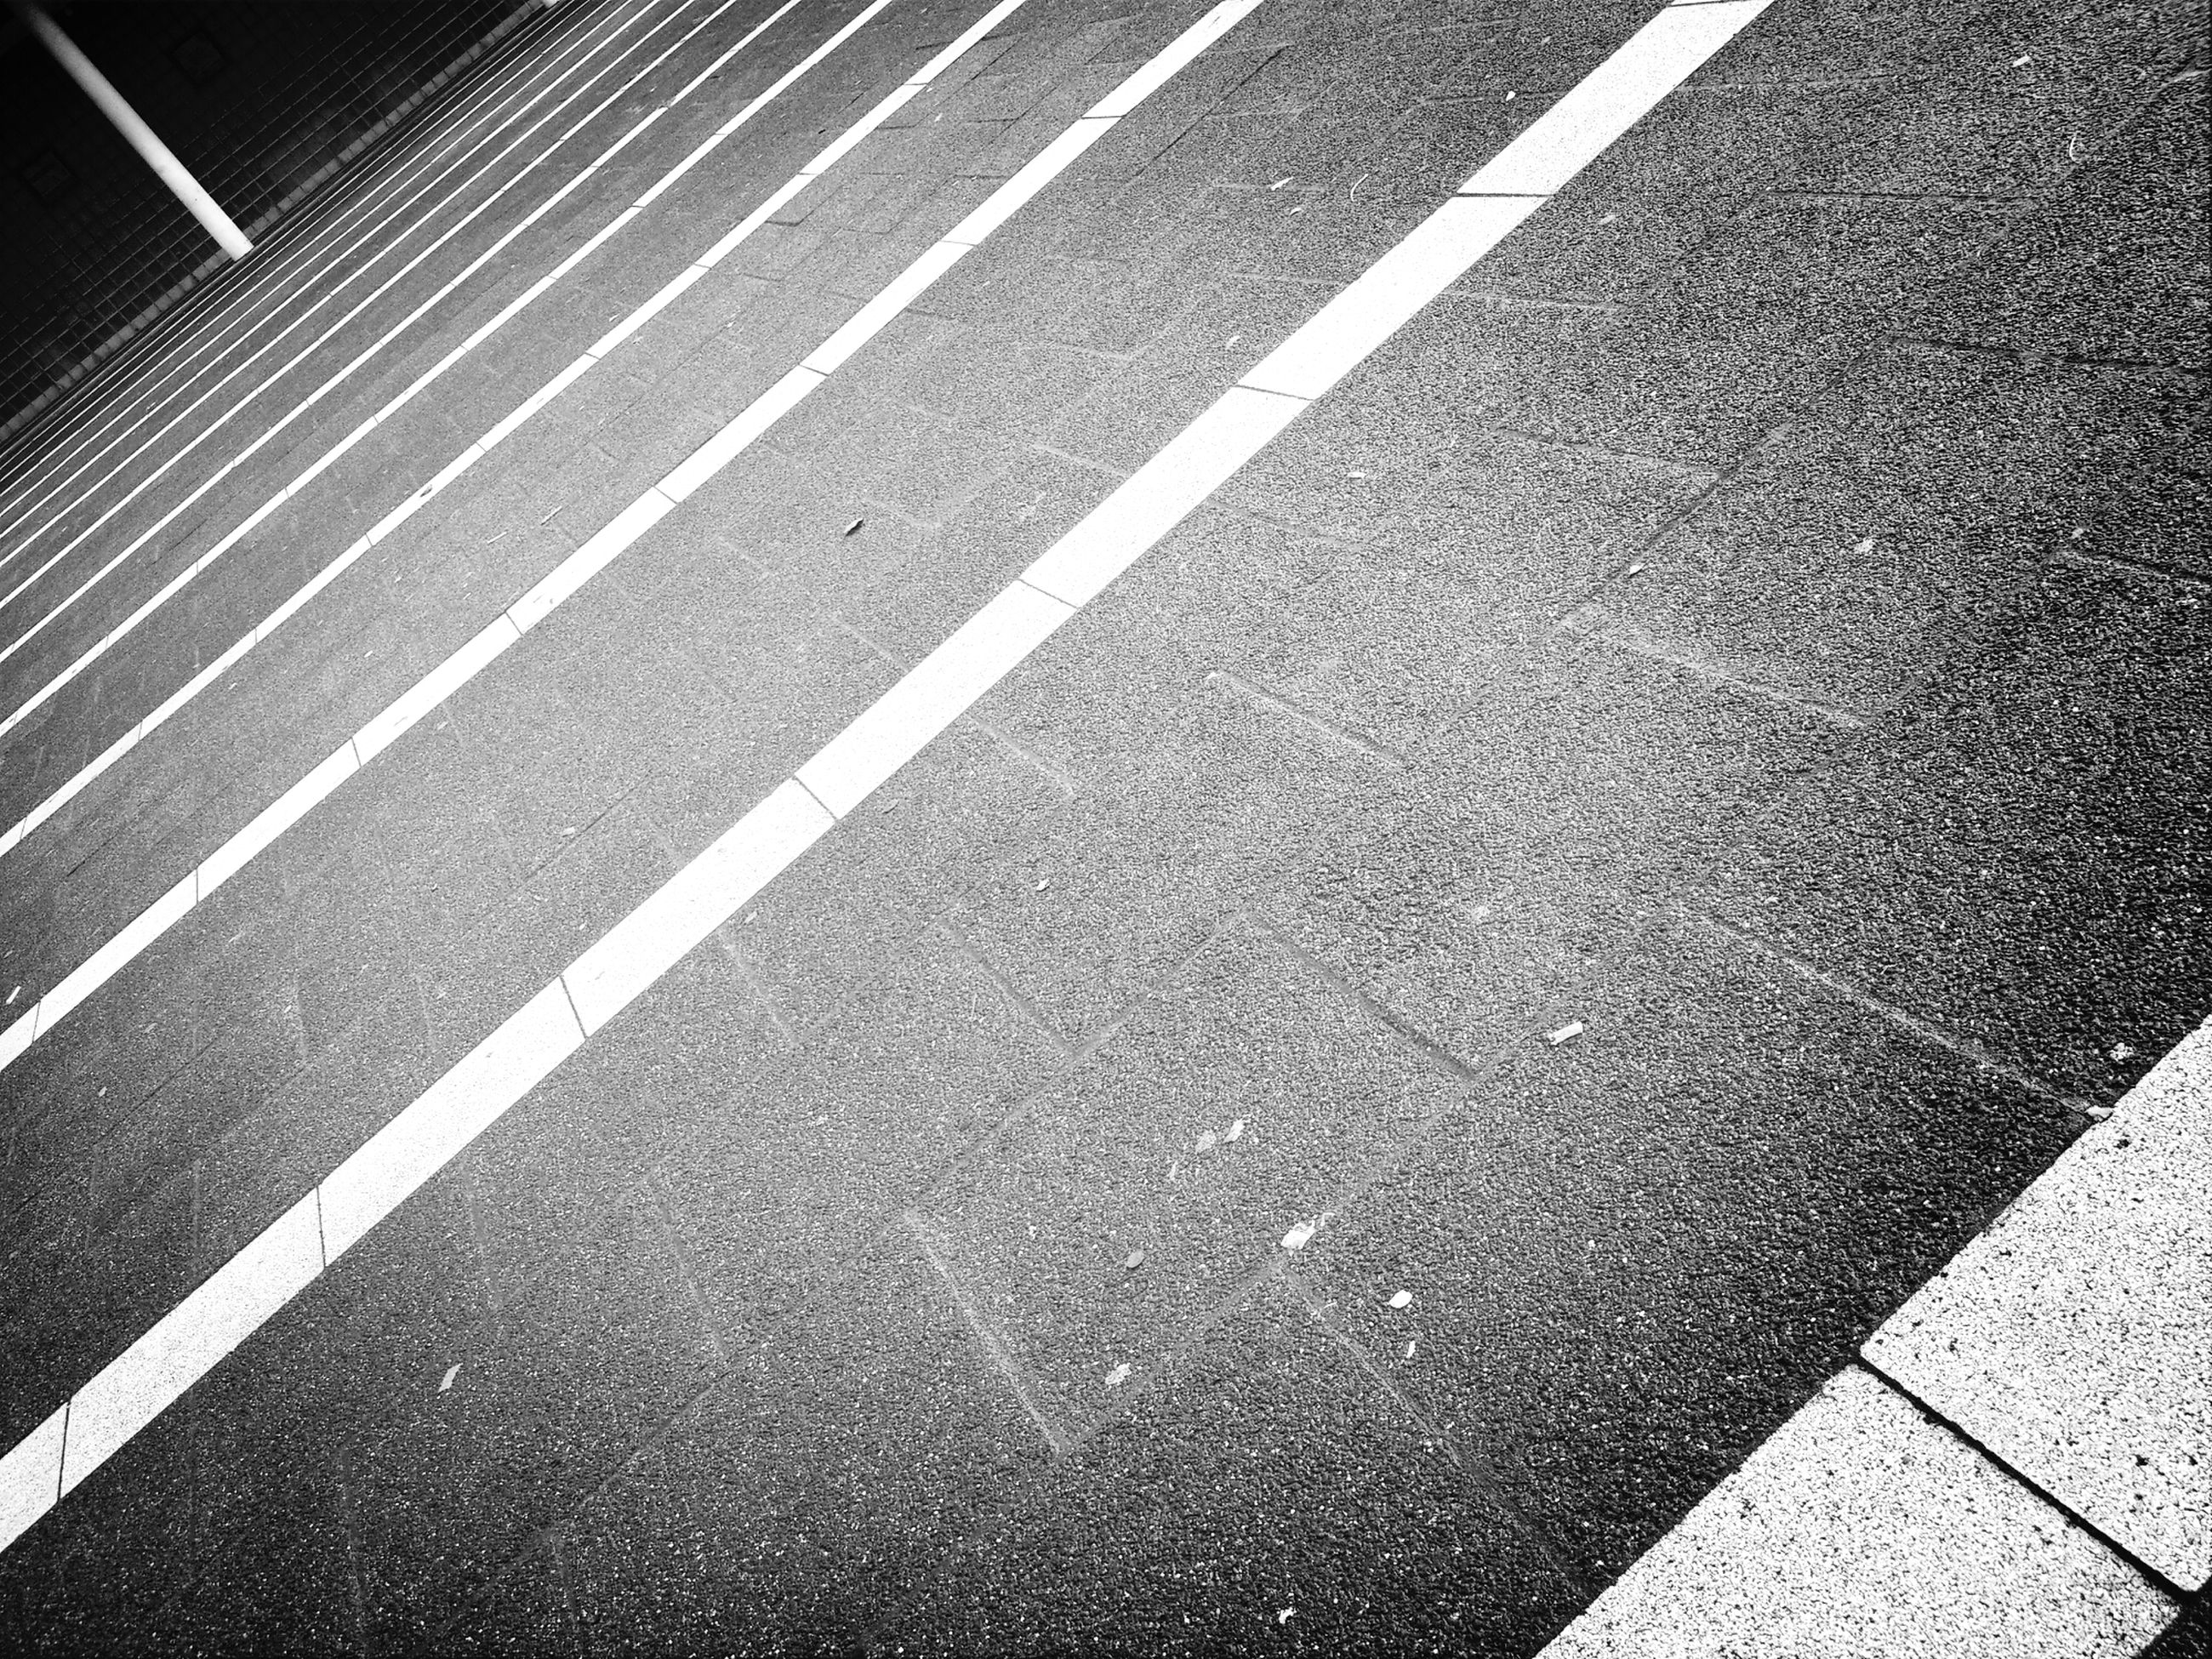 road marking, street, asphalt, transportation, road, high angle view, zebra crossing, the way forward, outdoors, full frame, sidewalk, day, pattern, no people, textured, sunlight, guidance, backgrounds, shadow, direction